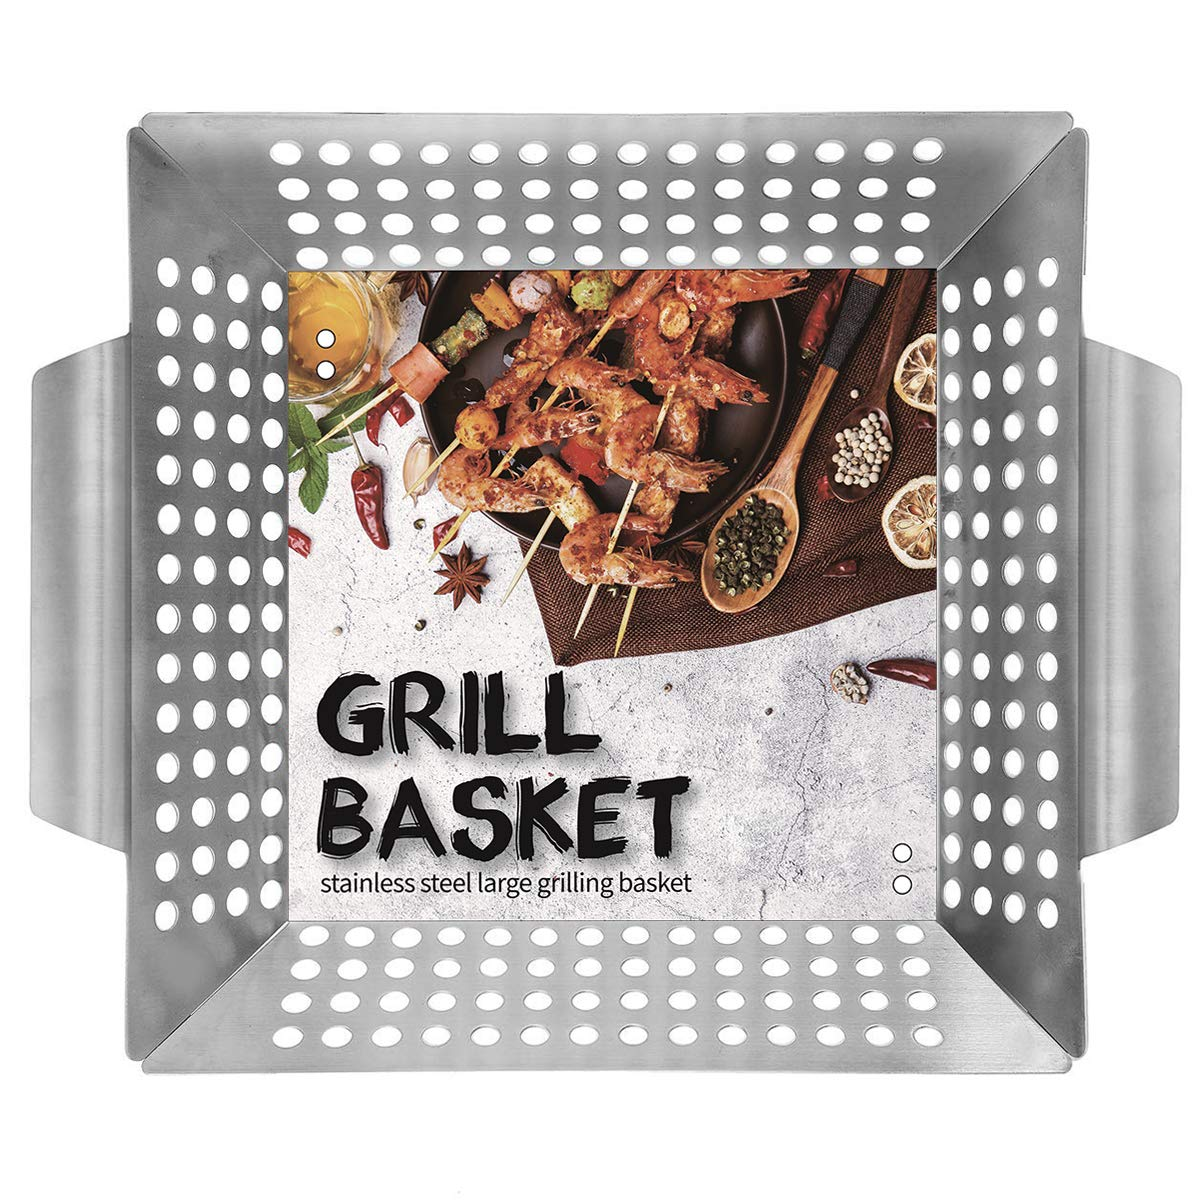 Ranphykx Vegetable Grill Basket - Safe/Clean Porcelain Enameled BBQ Grilling Basket (Large 12''x12''x3'') for Veggies, Kabobs, Seafood, Meats - Stainless Steel by Ranphykx